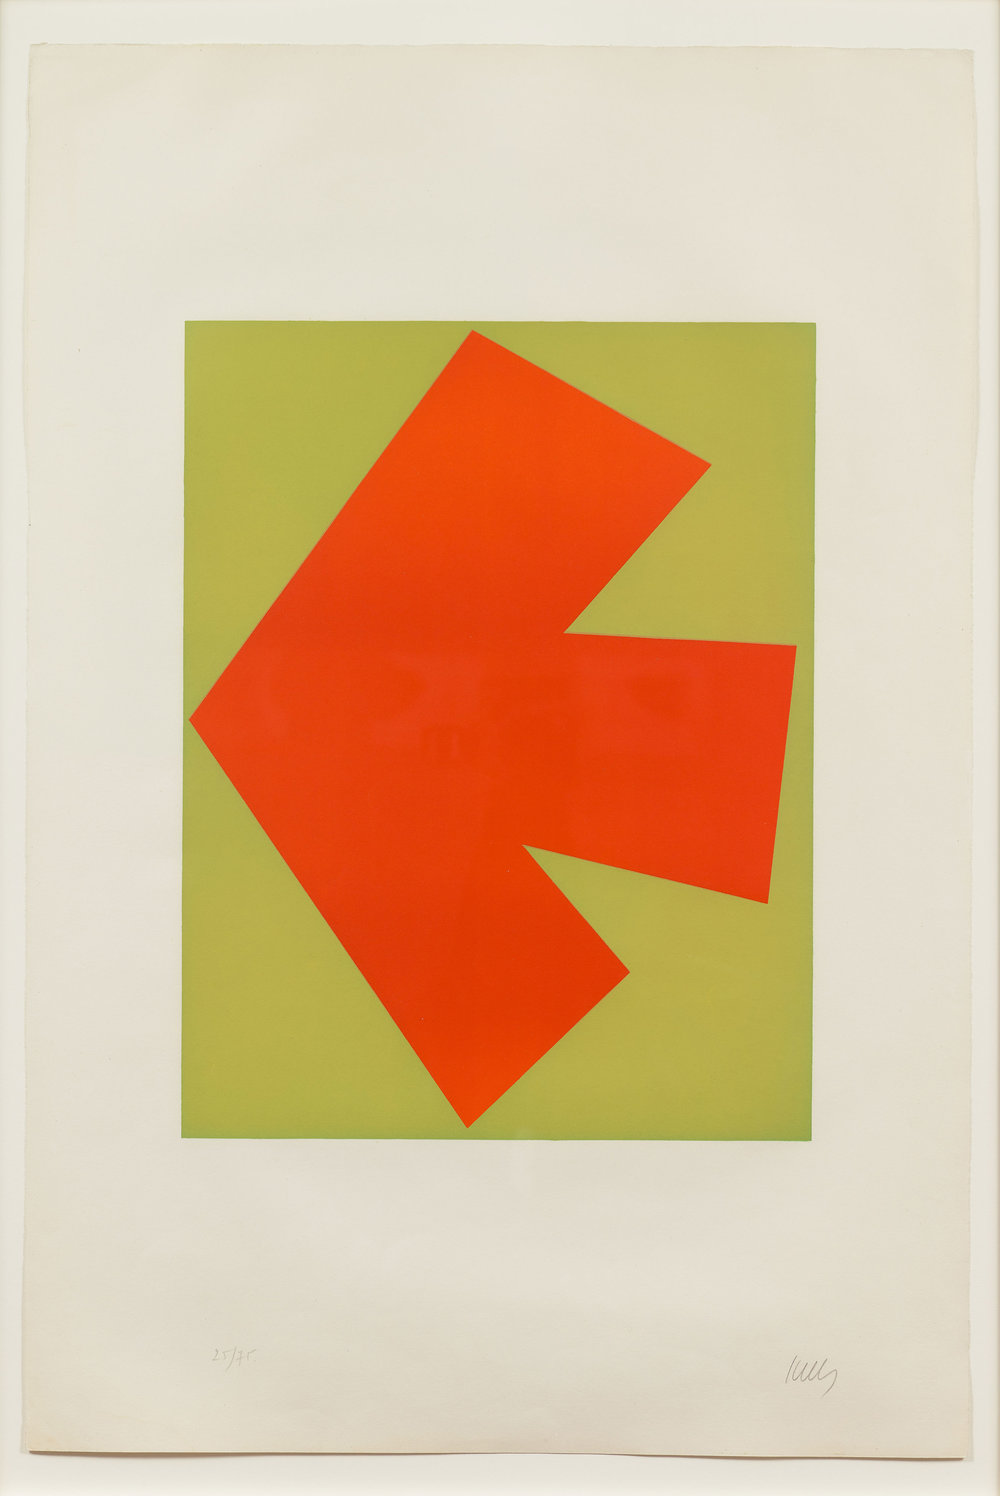 Ellsworth Kelly (1923-2015) Orange Over Green (Orange sur Vert), from the Suite of Twenty-Seven Color Lithographs, 1964 Lithograph in colors on Rives BFK paper, with full margins Plate: 20 3/8 x 15 5/8 inches Sheet: 35 x 23 5/8 inches